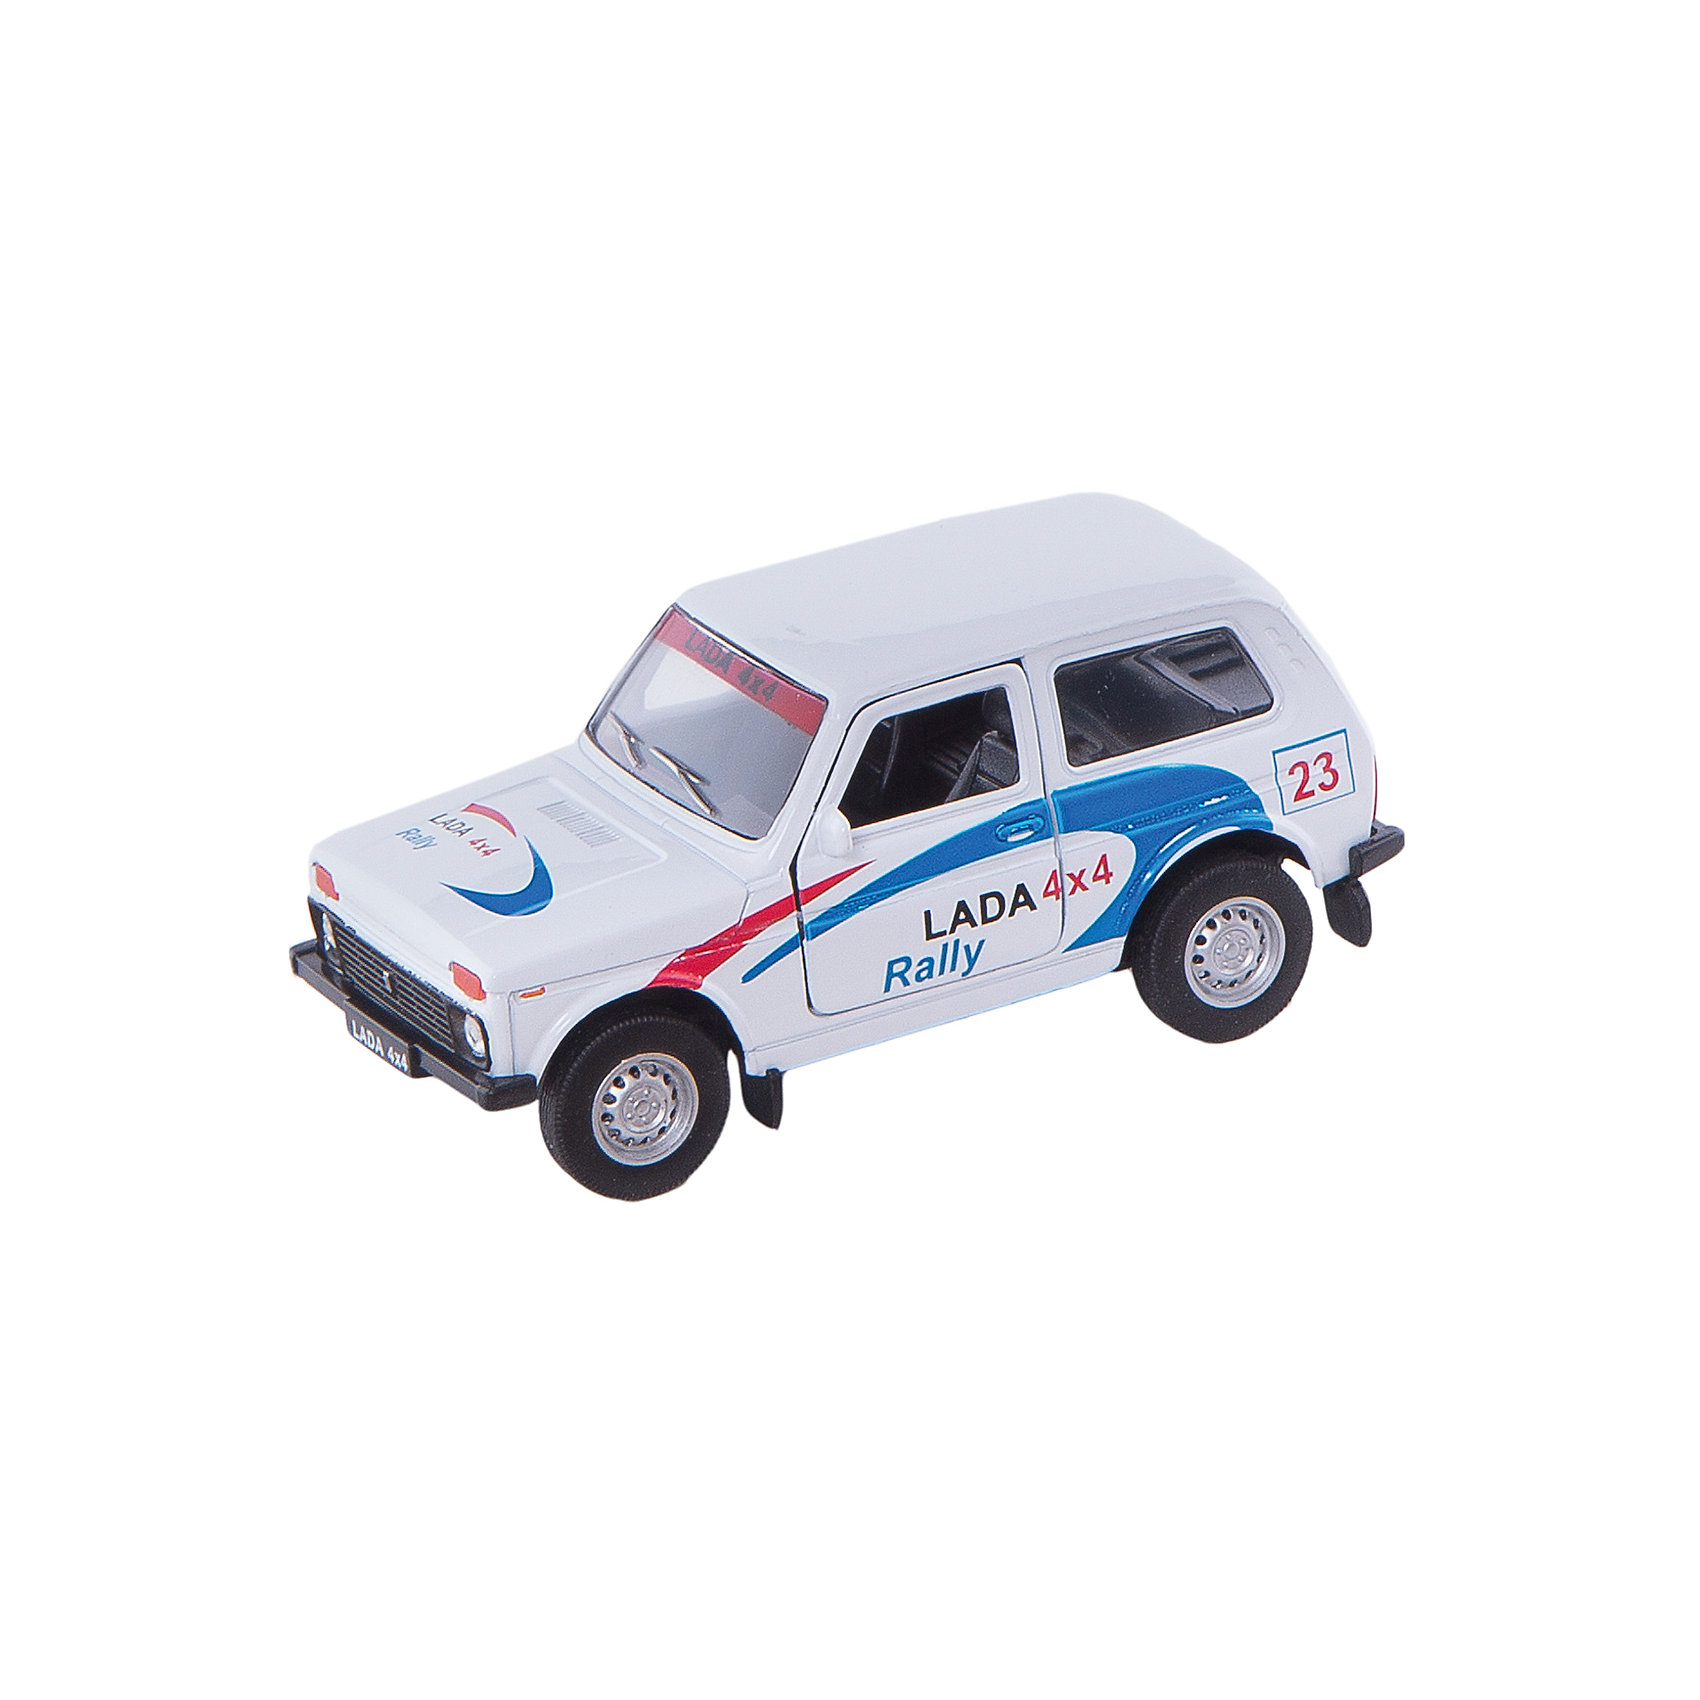 Welly Welly Модель машины 1:34-39 LADA 4x4 Rally welly hummer h3 1 34 39